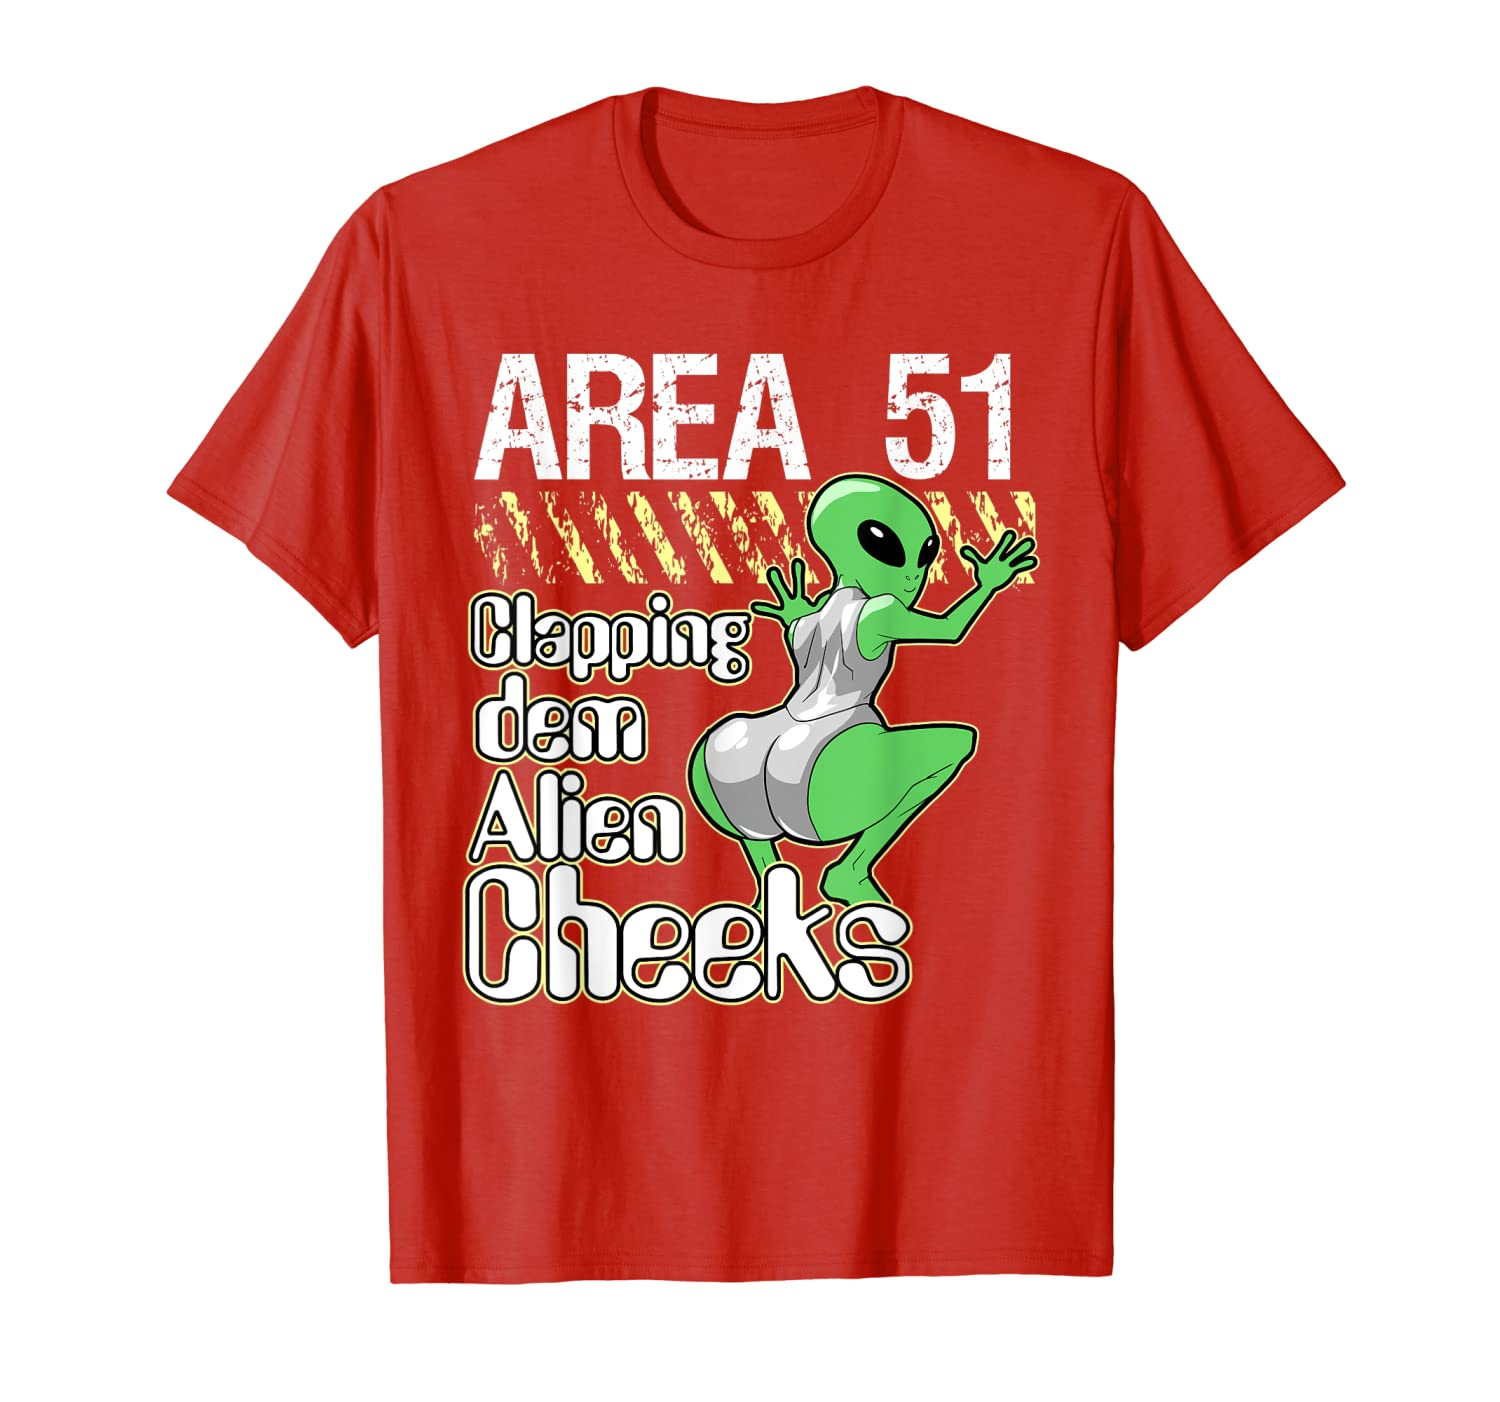 Funny Area 51 Clapping Dem Alien Cheeks T-Shirt